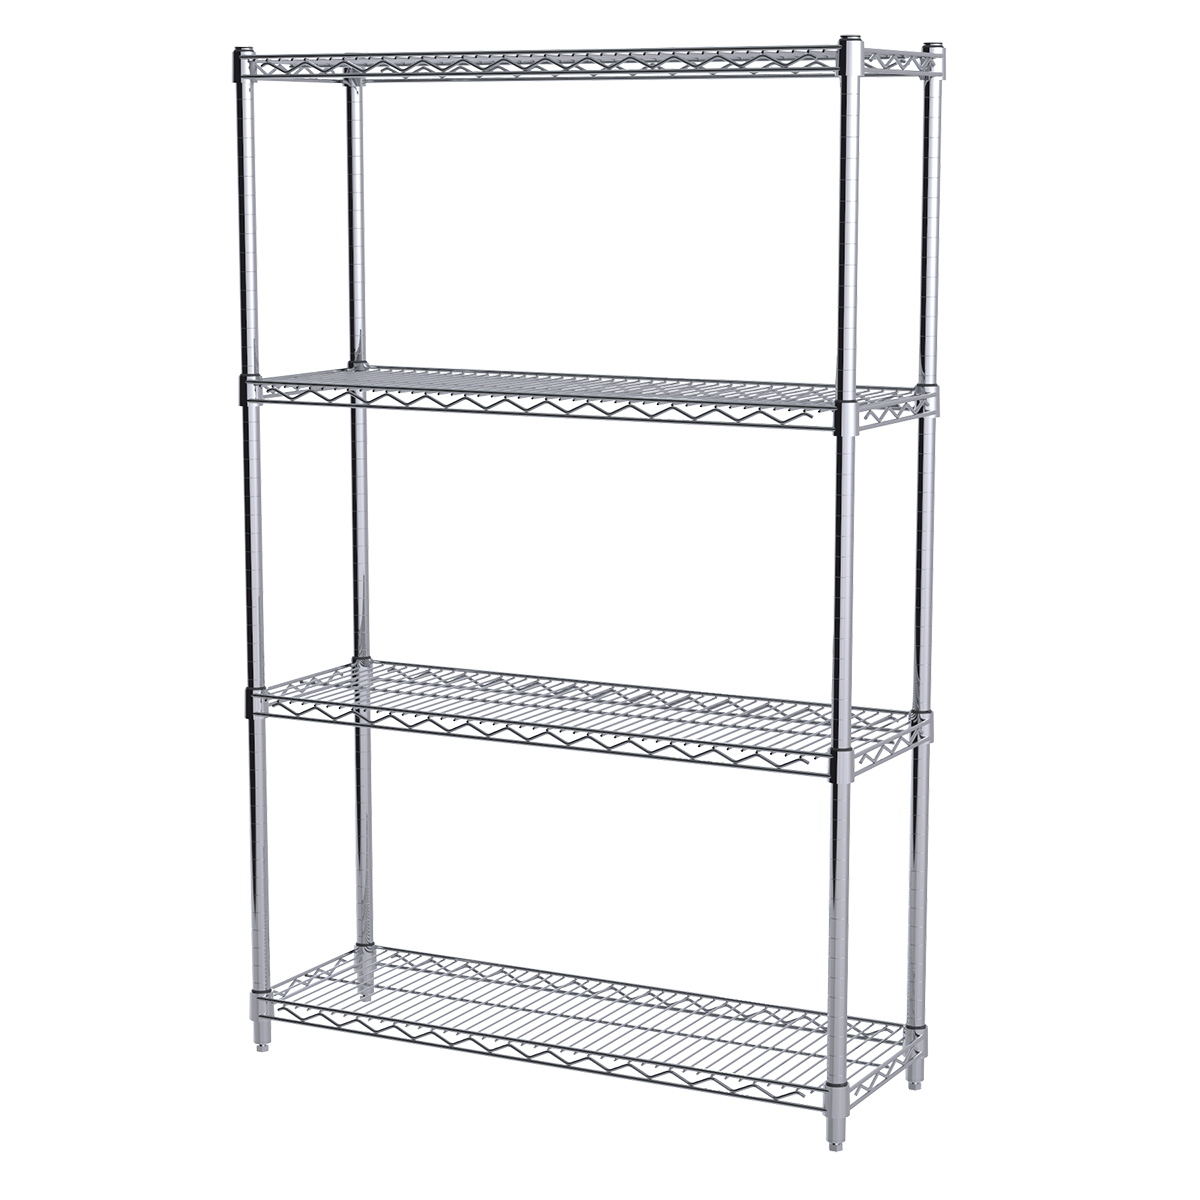 12x36x54, 4-Shelf Wire Shelving Starter Unit, Chrome.  This item sold in carton quantities of 1.